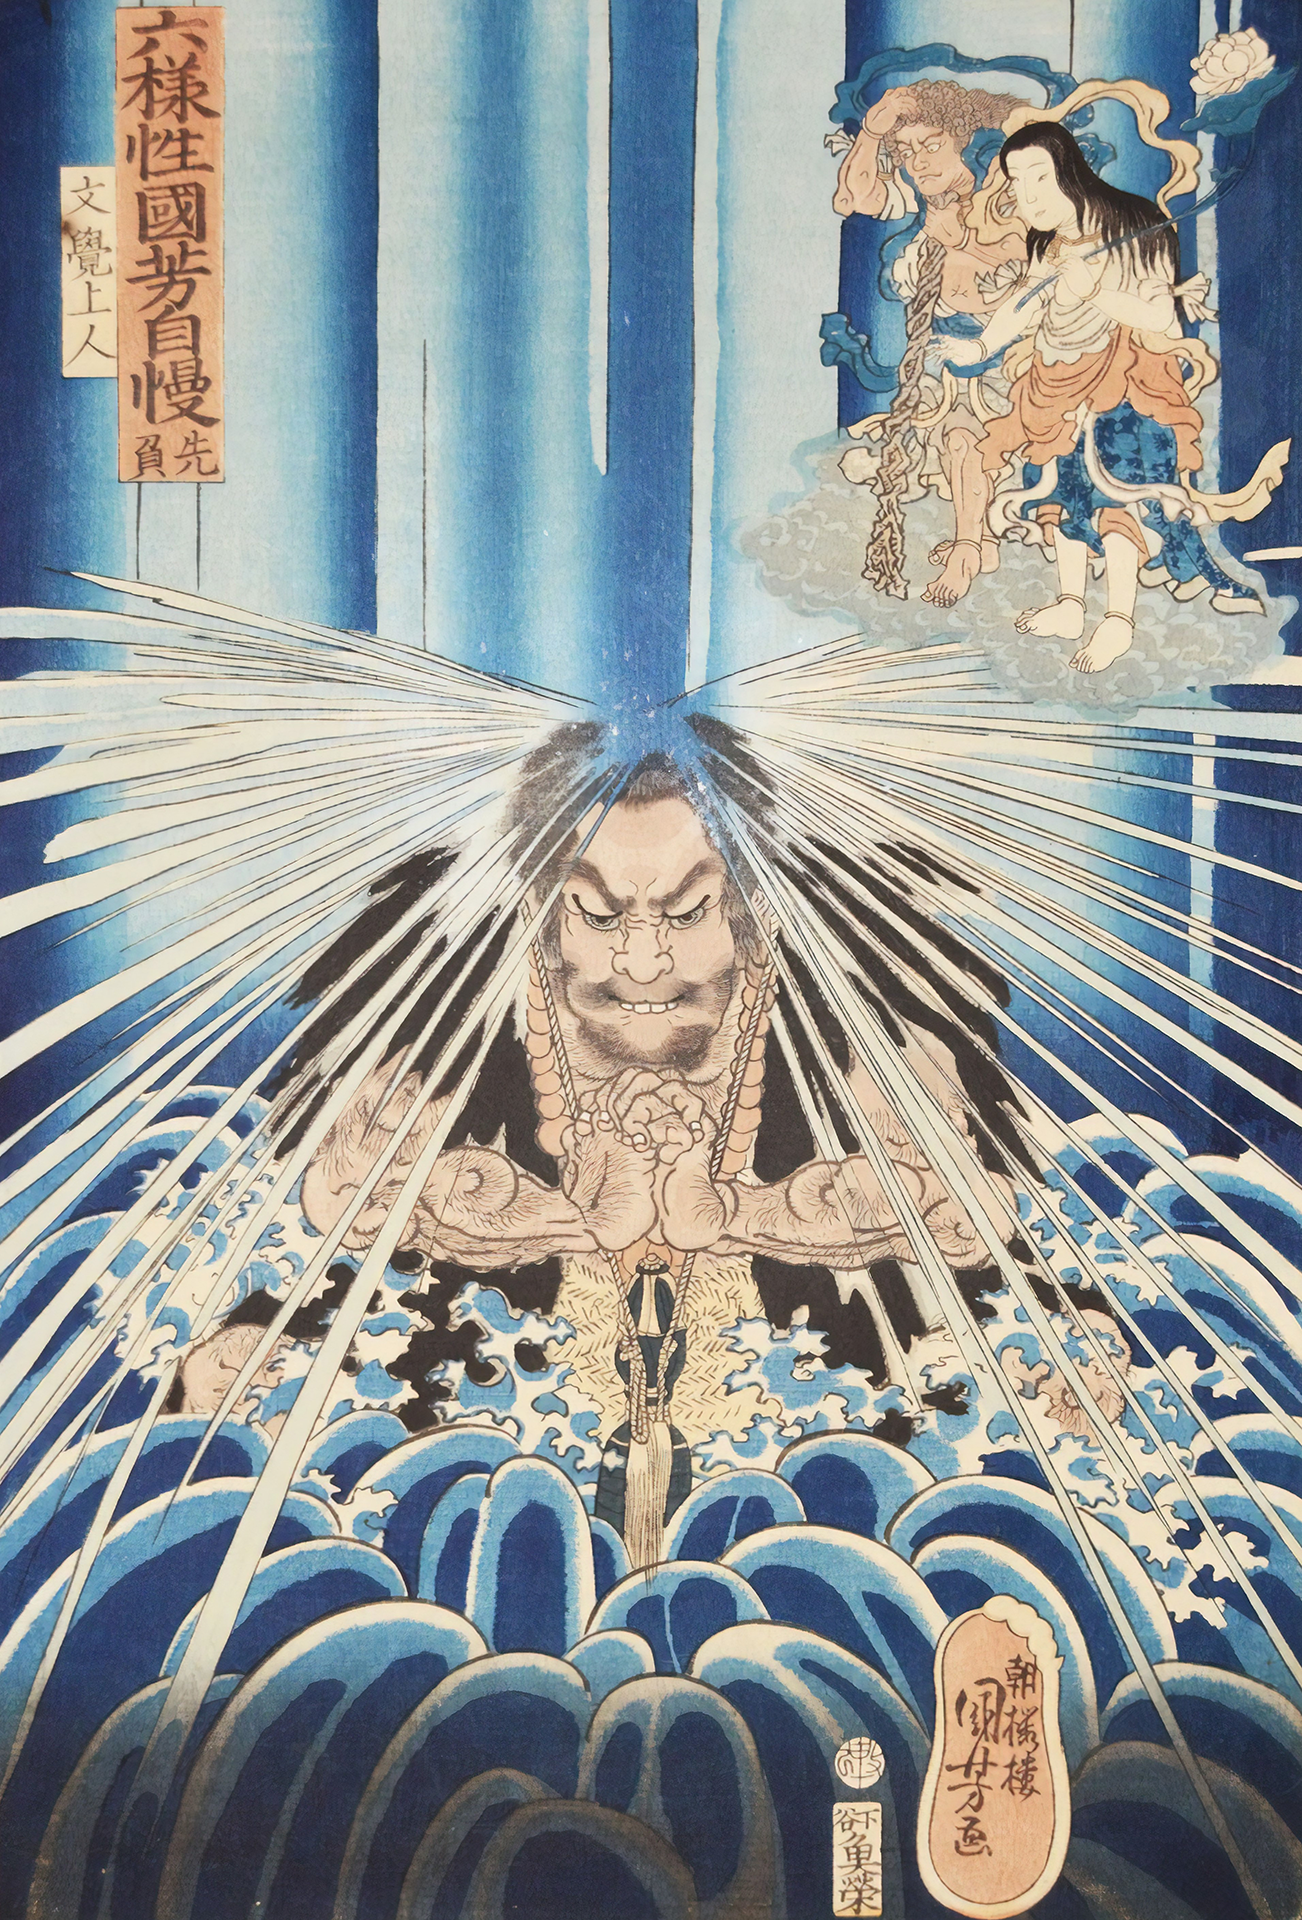 Mongaku Shonin under the Waterfall (1860) by Kuniyoshi